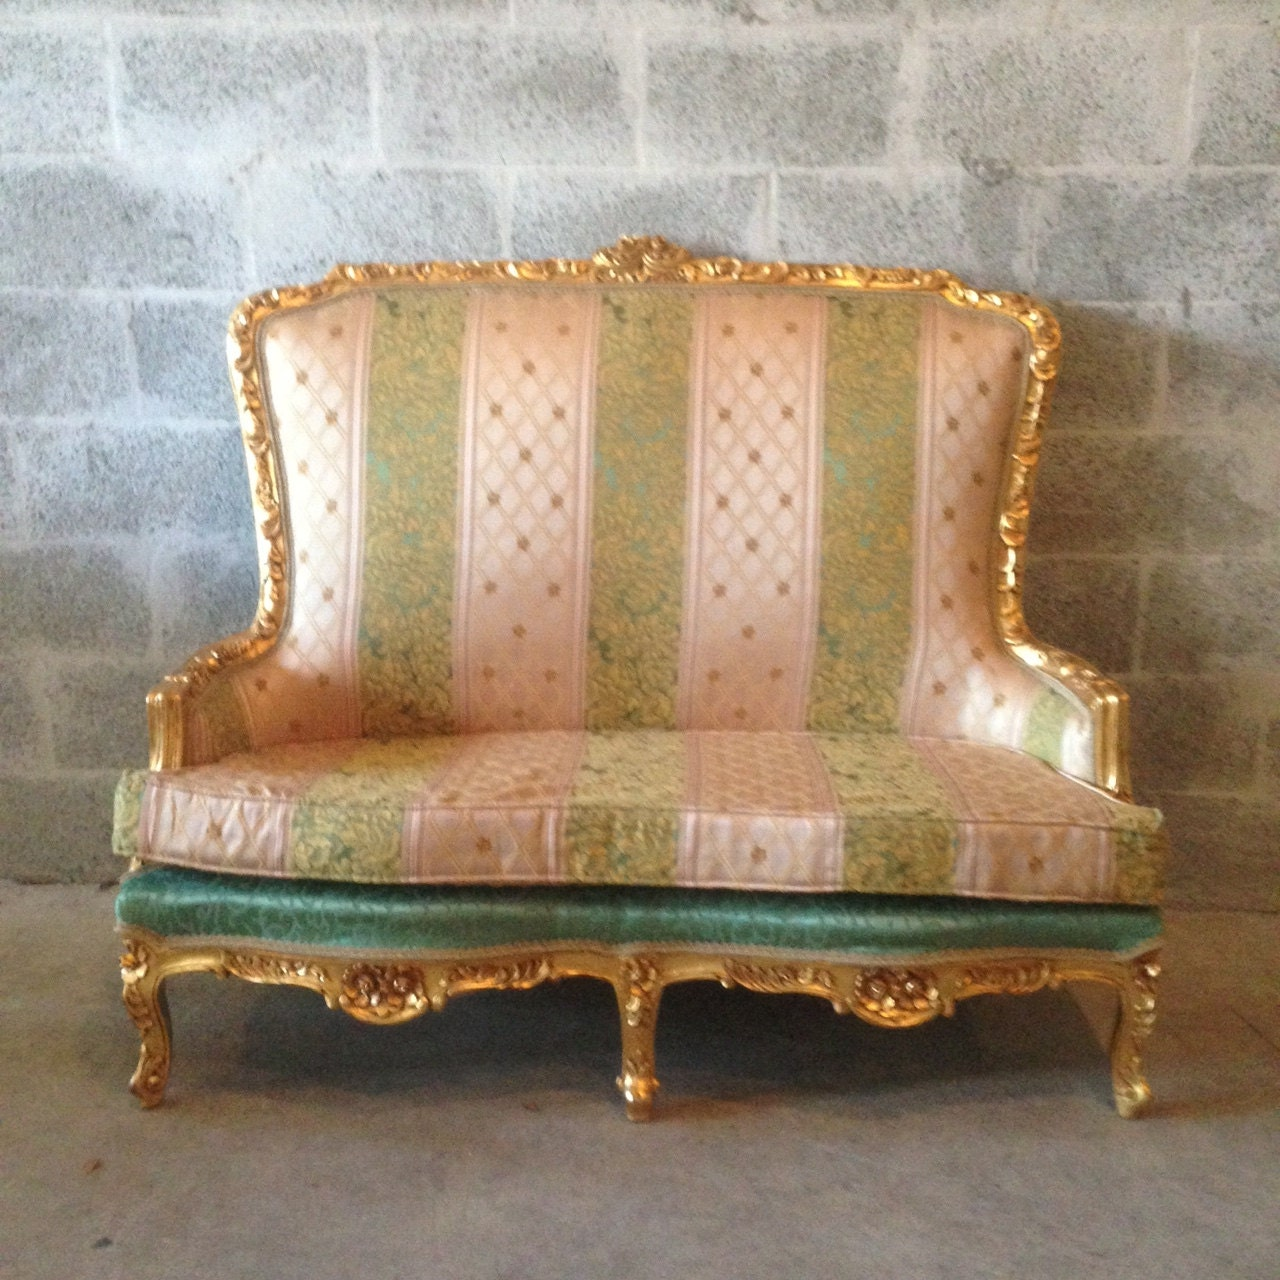 Antique French Louis Xvi Marquise Sofa Settee Refinished Gold